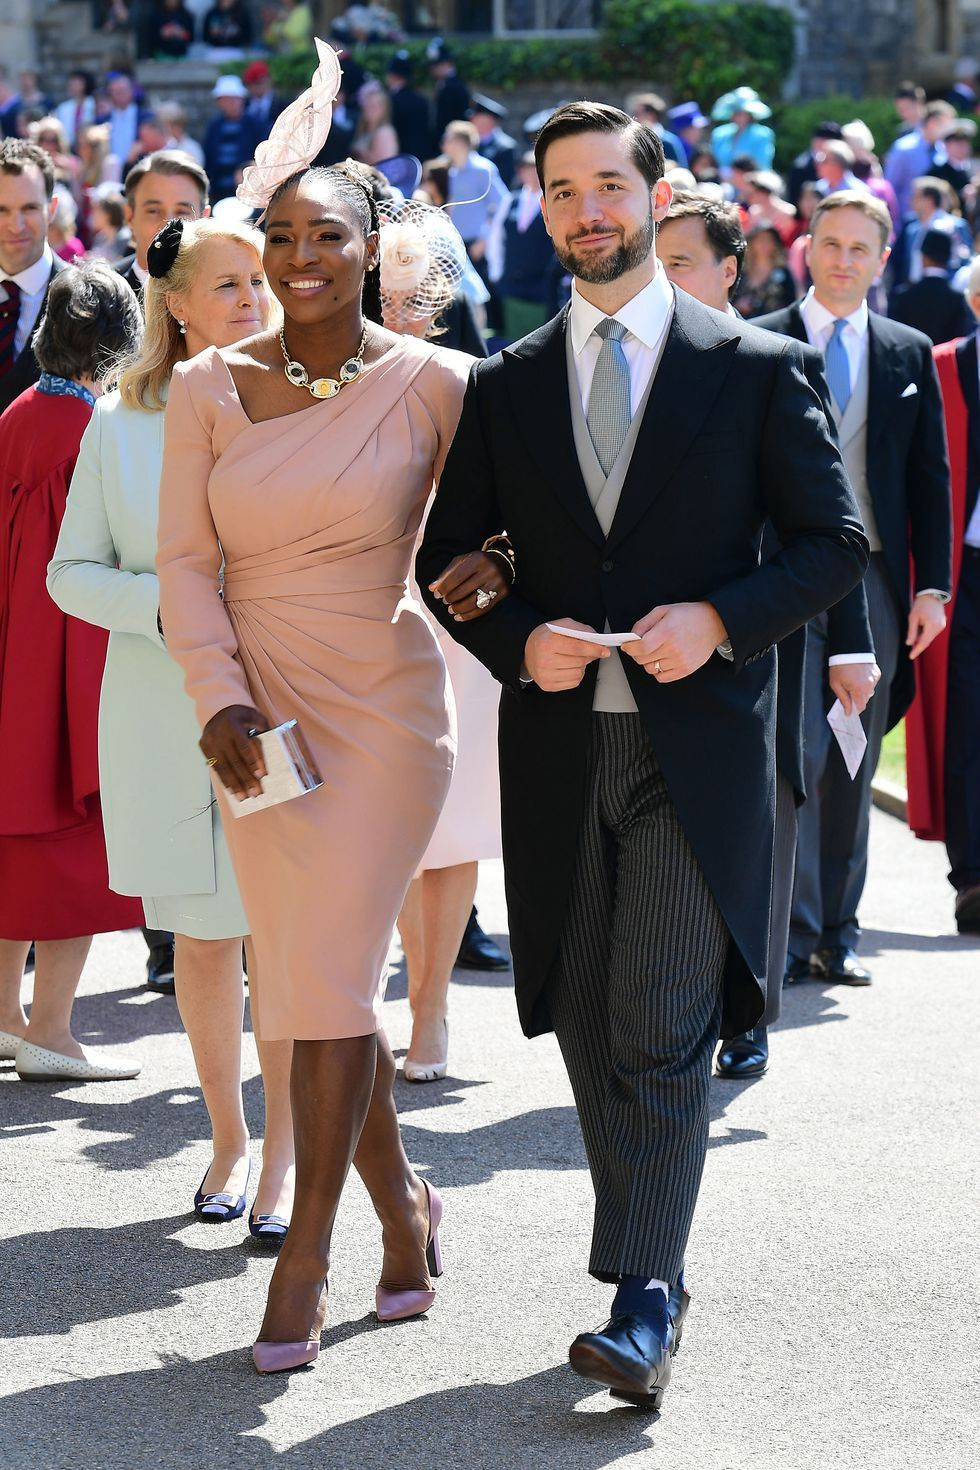 The Best Dressed Guests At The Royal Wedding Royal Wedding Guests Outfits Harry And Meghan Wedding Royal Wedding